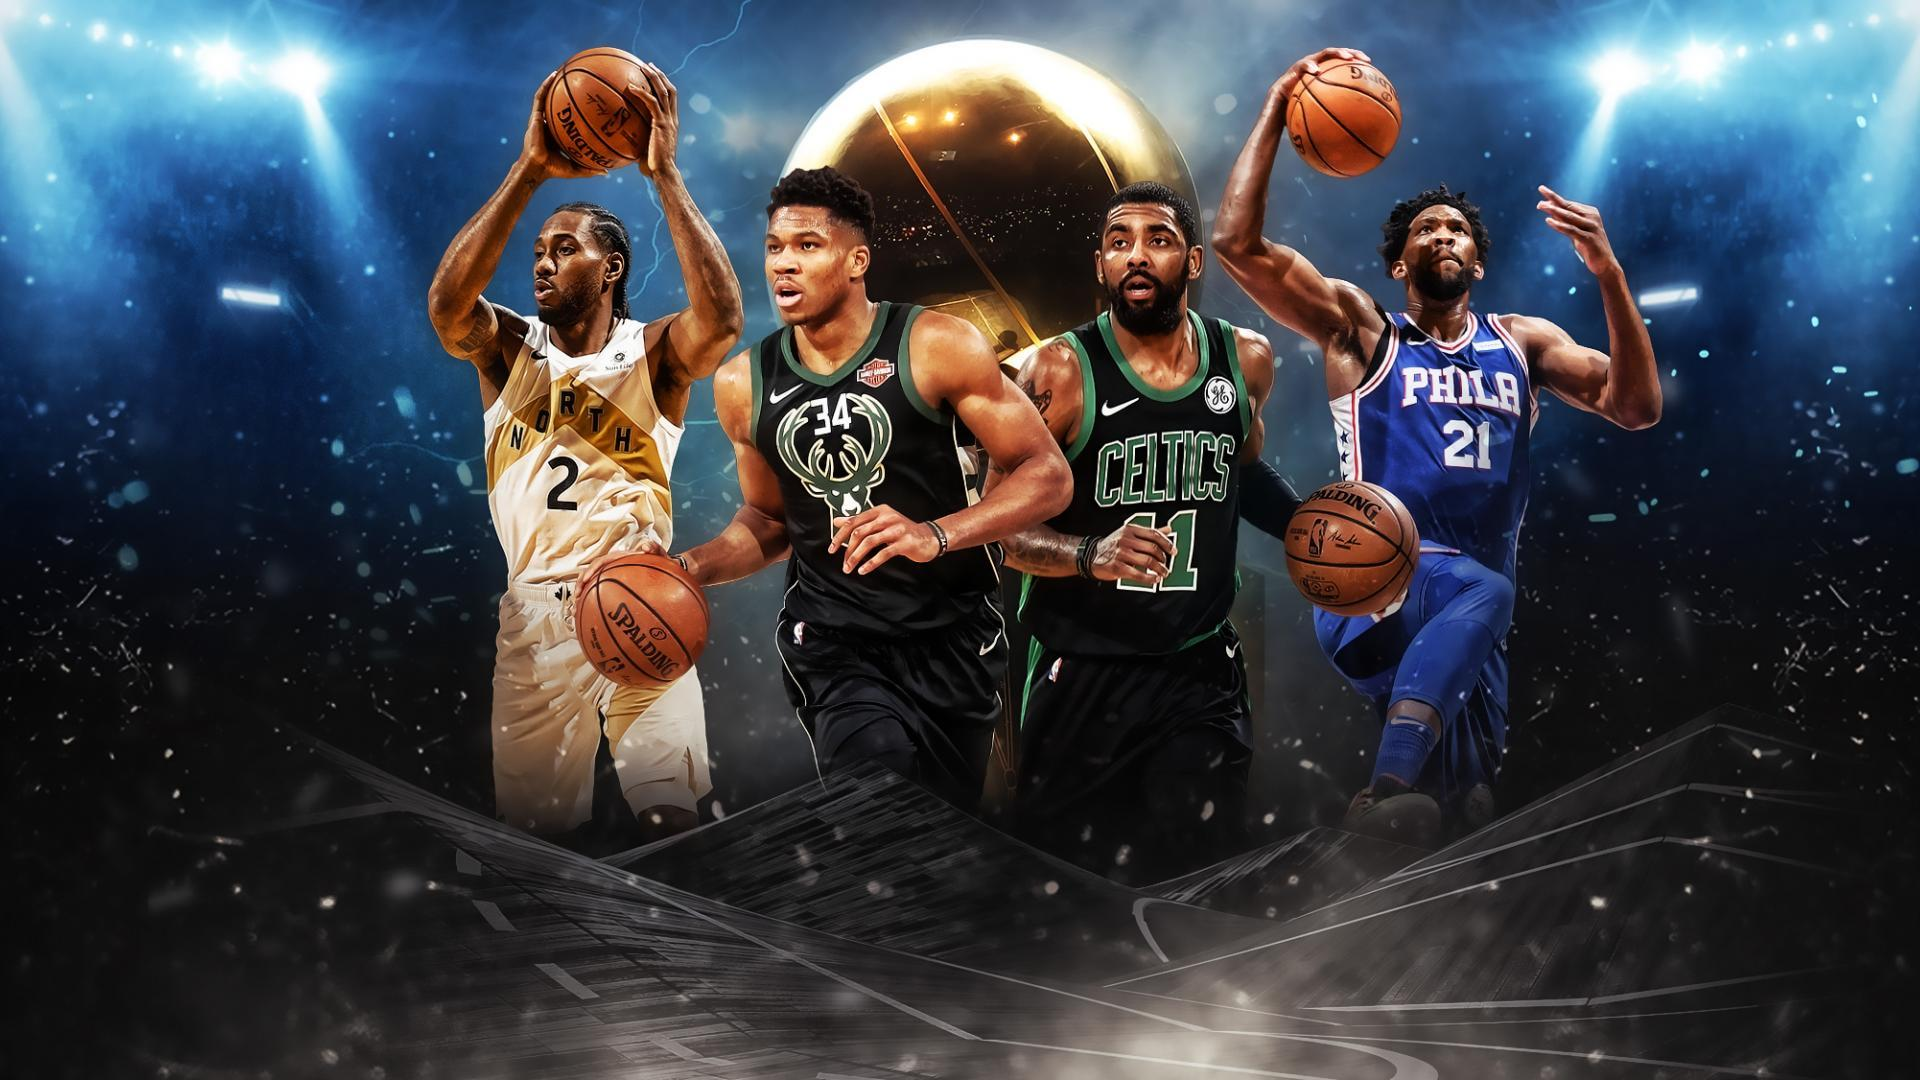 NBA finals 2019 online live stream watch VPN